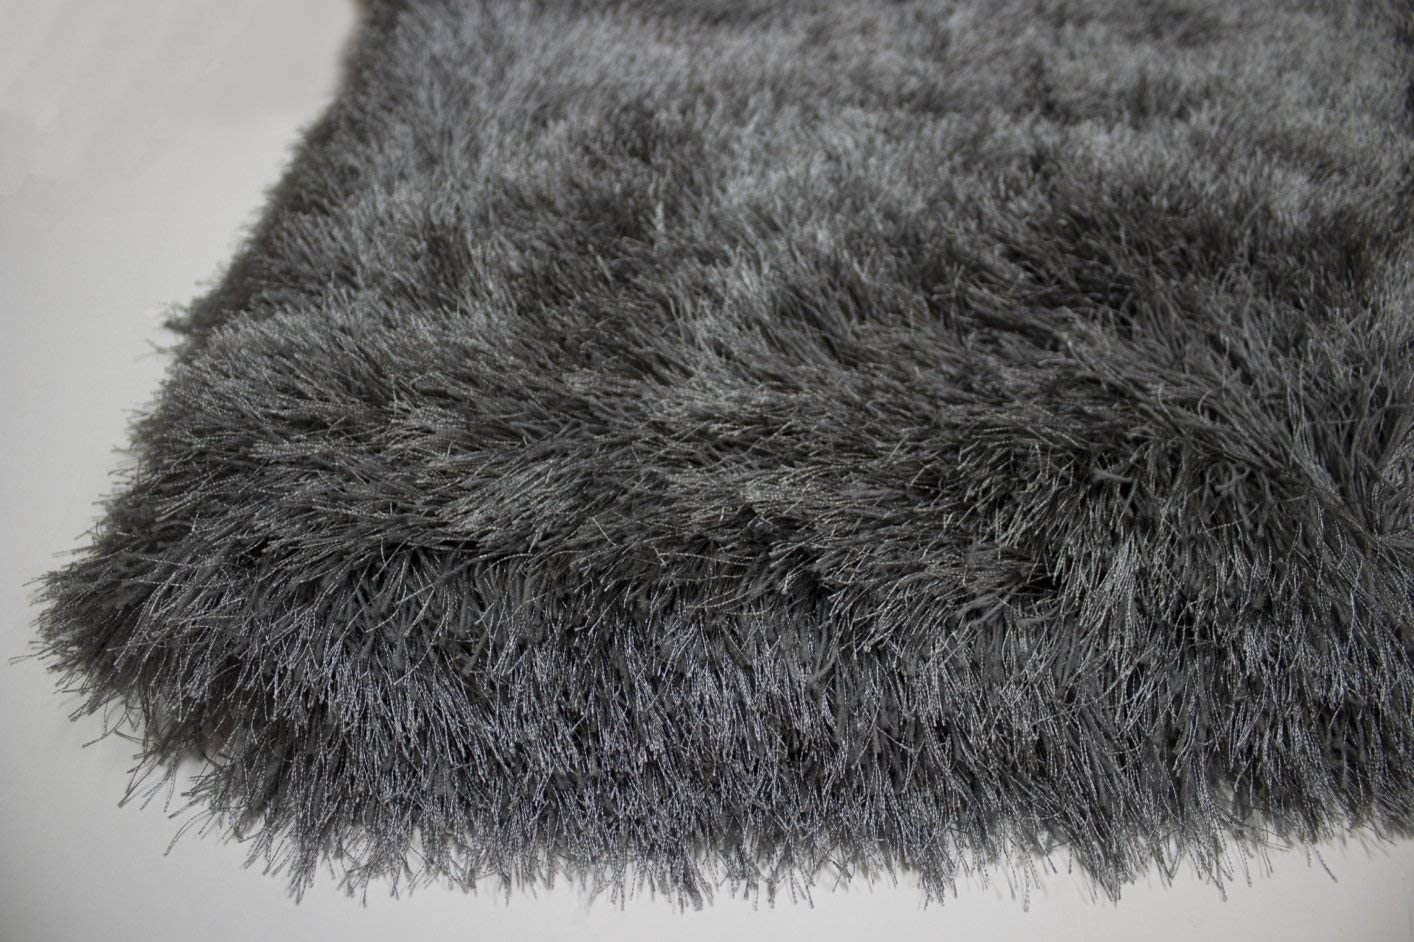 8×10 Feet Hand Woven Modern Contemporary Charcoal Dark Gray Dark Grey Color Solid Area Rug Carpet Rug Bedroom Living Room Indoor Shag Shaggy Canvas Backing Plush Pile Office Space Fluffy Fuzzy